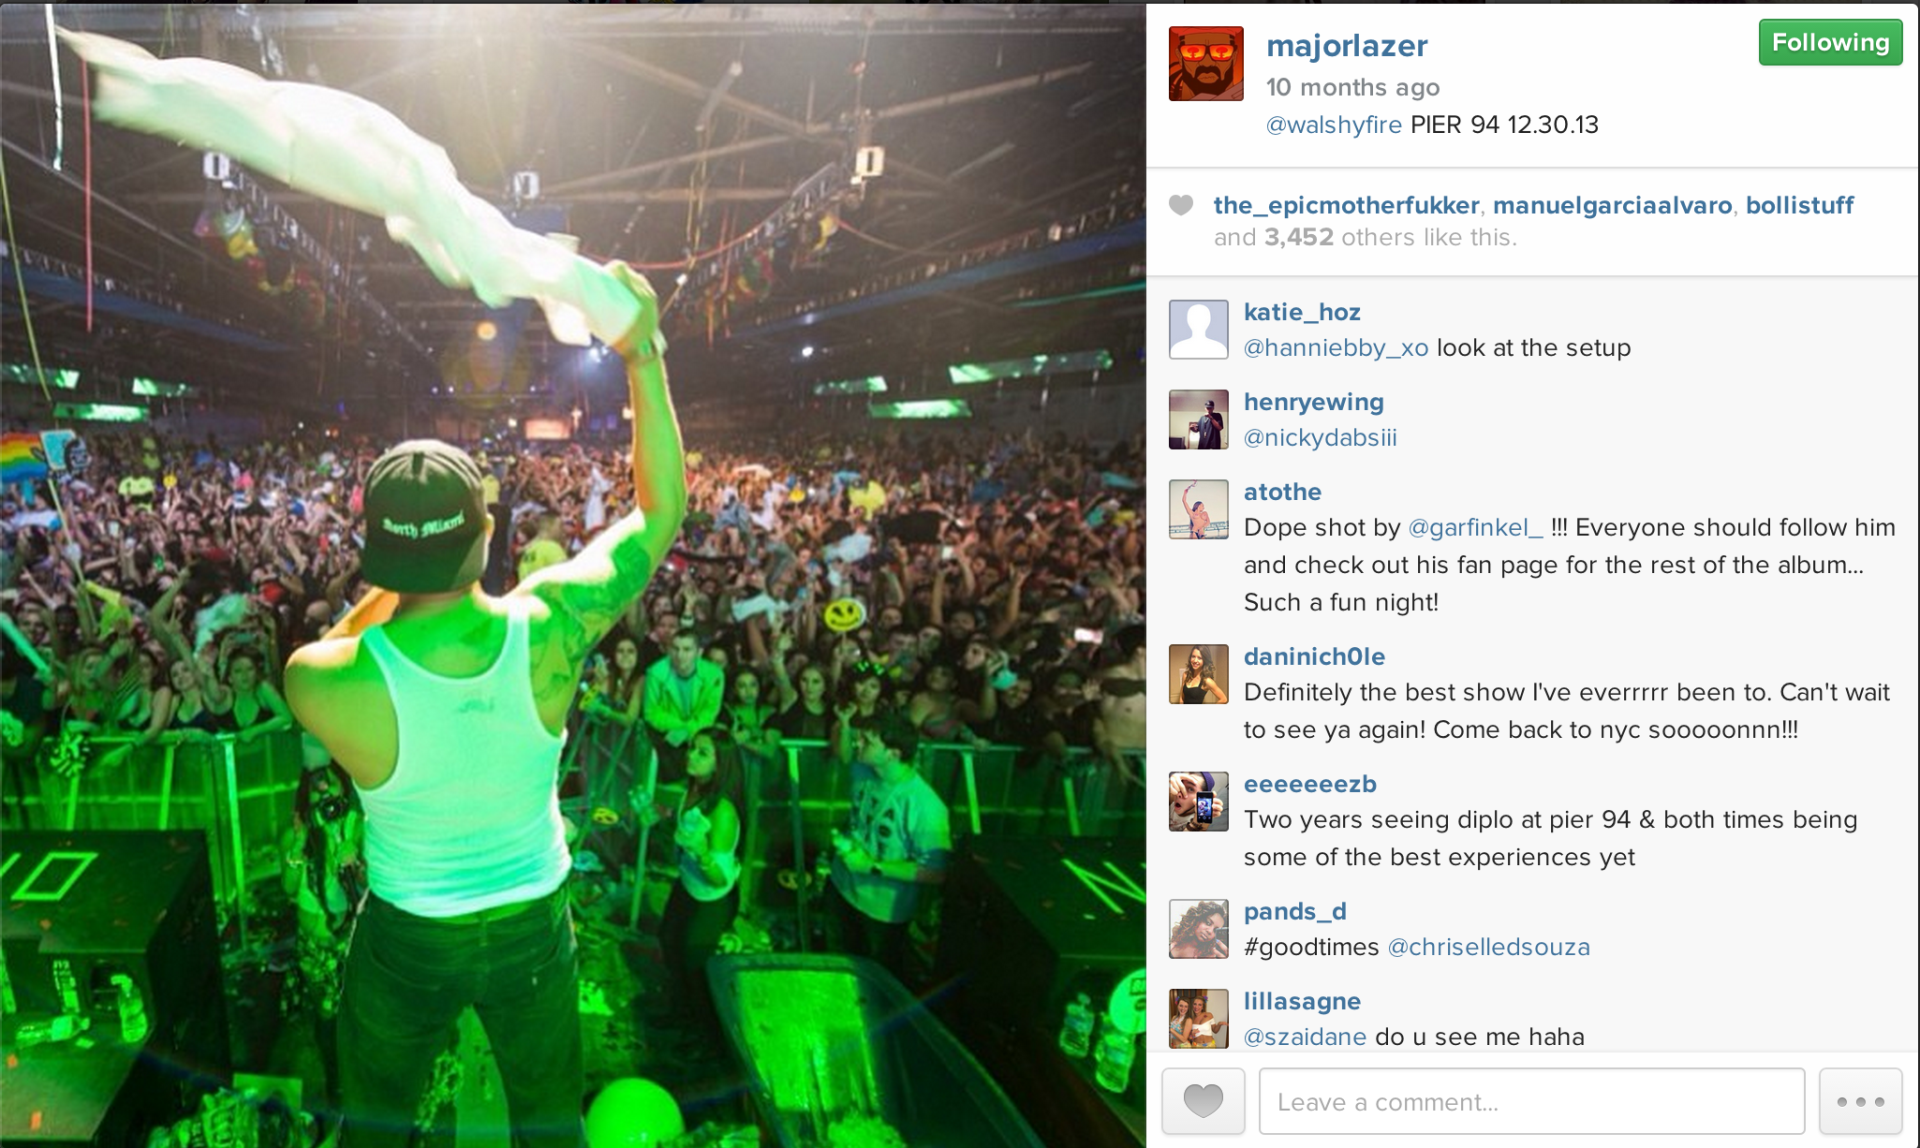 Major Lazer sharing my photo from their show at Pier 94 in NYC.